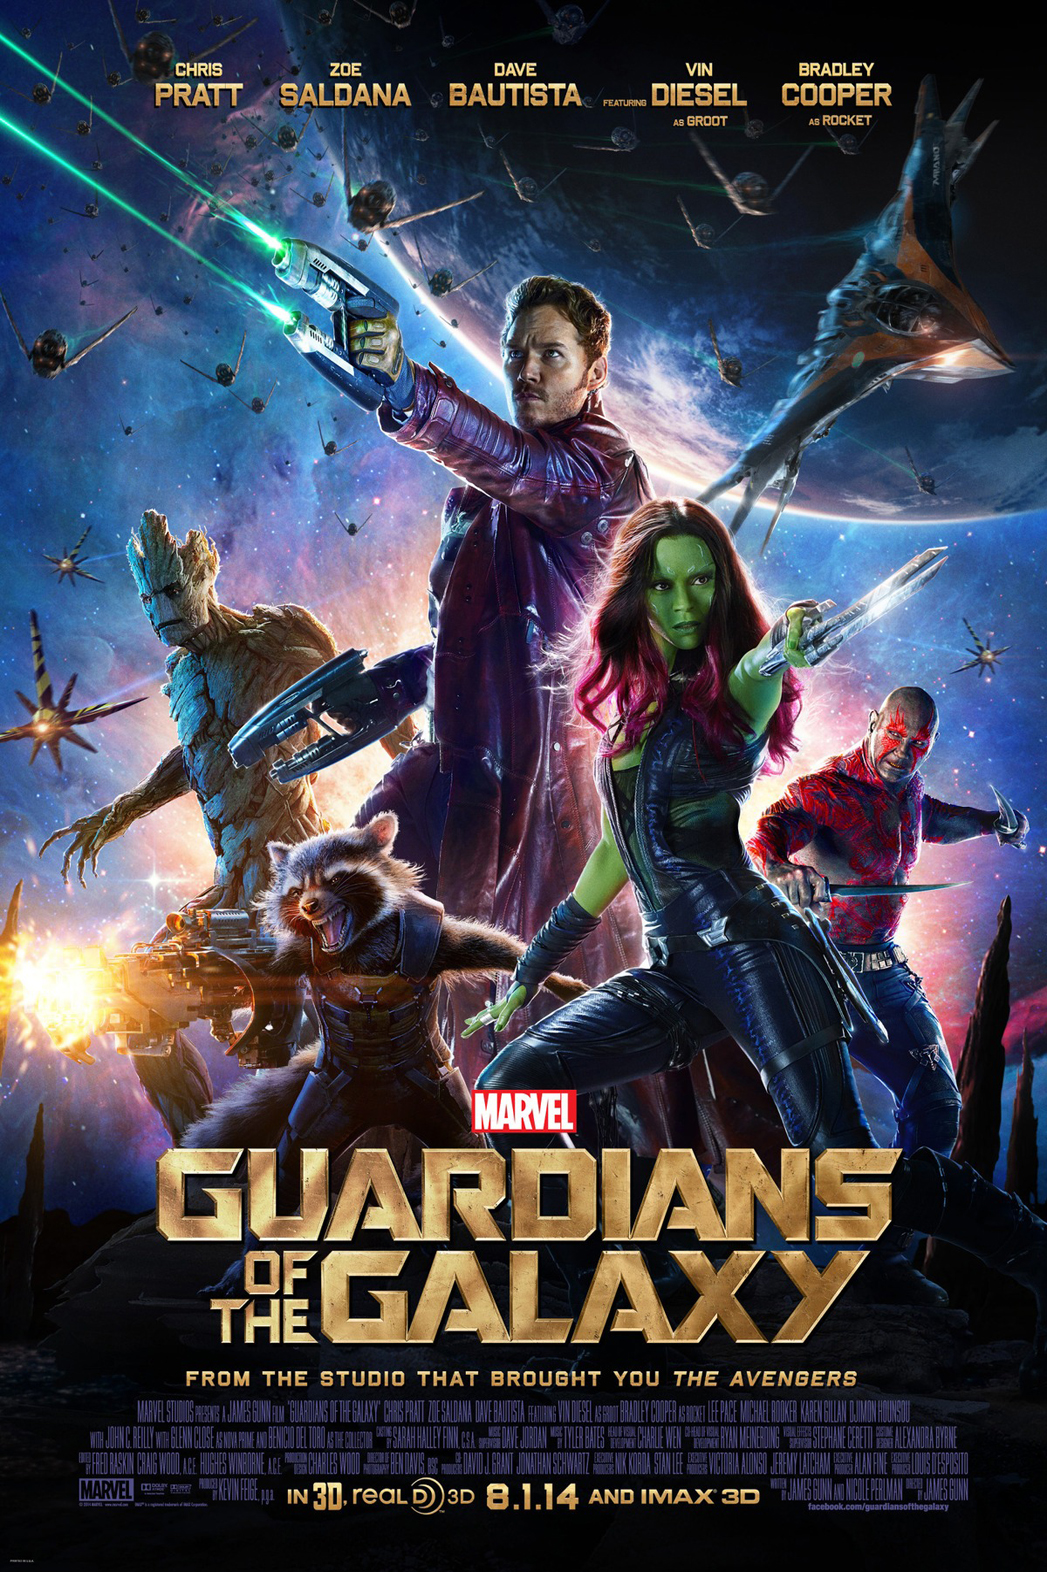 Guardians of the Galaxy Poster 2014 P